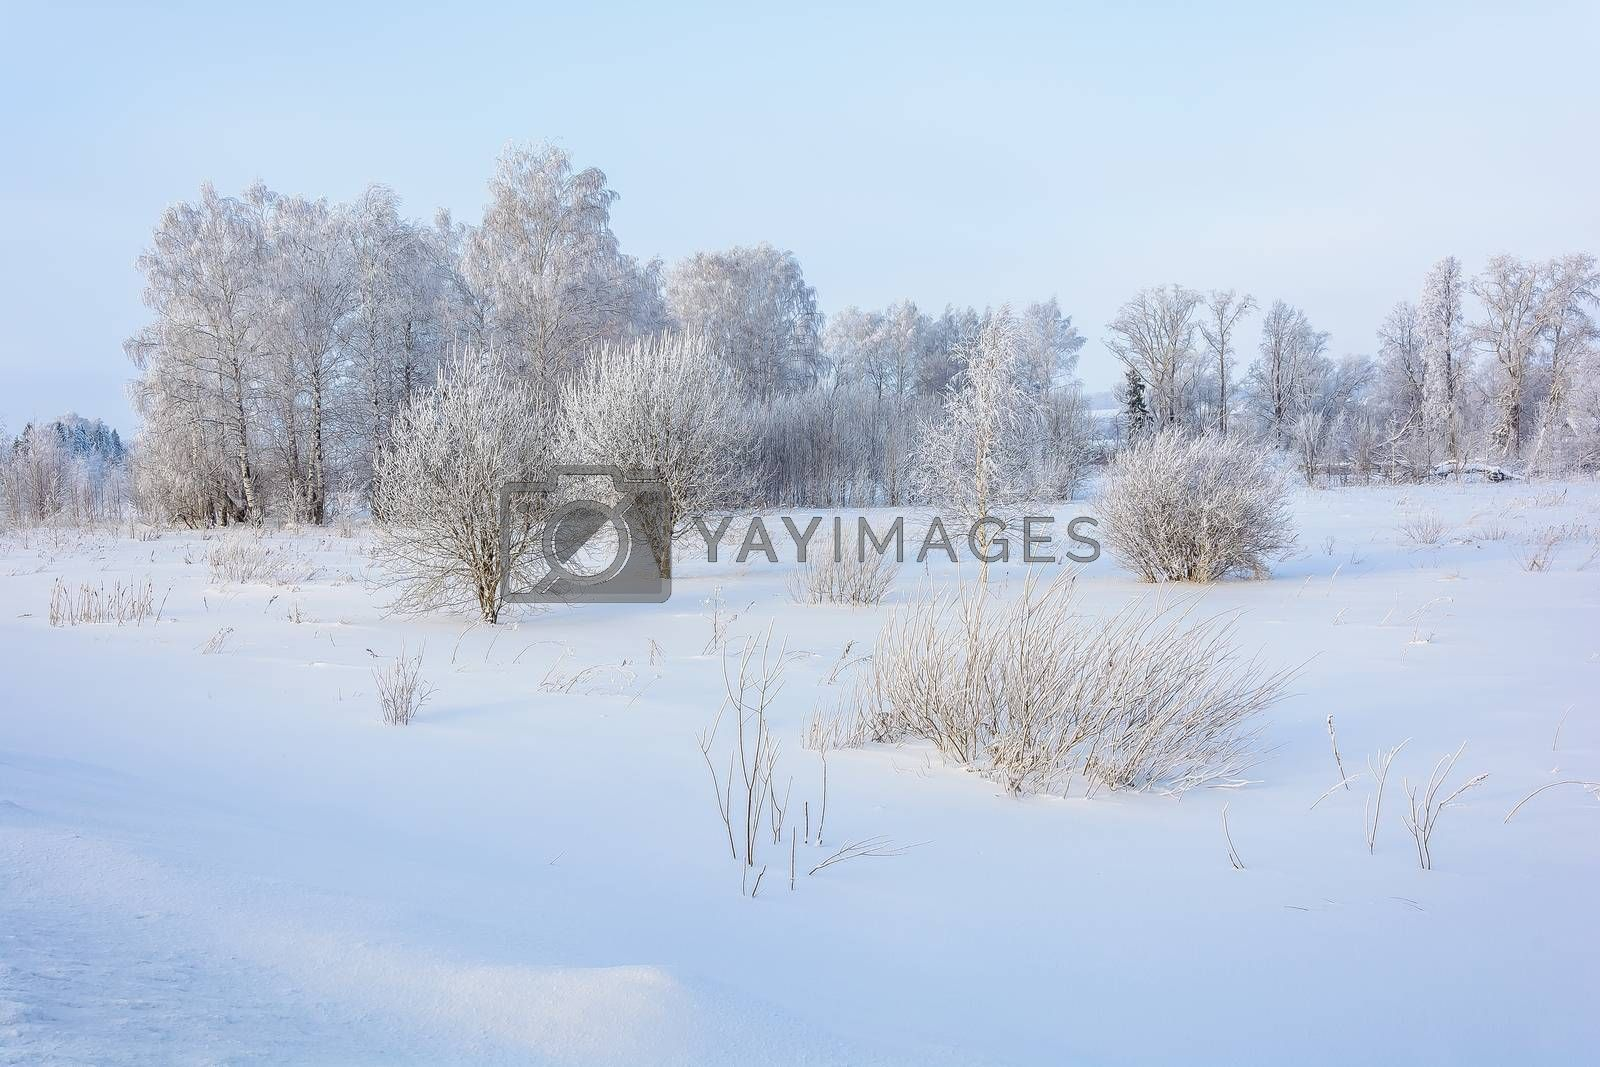 The outskirts of the village on the edge of a snow field in cold winter